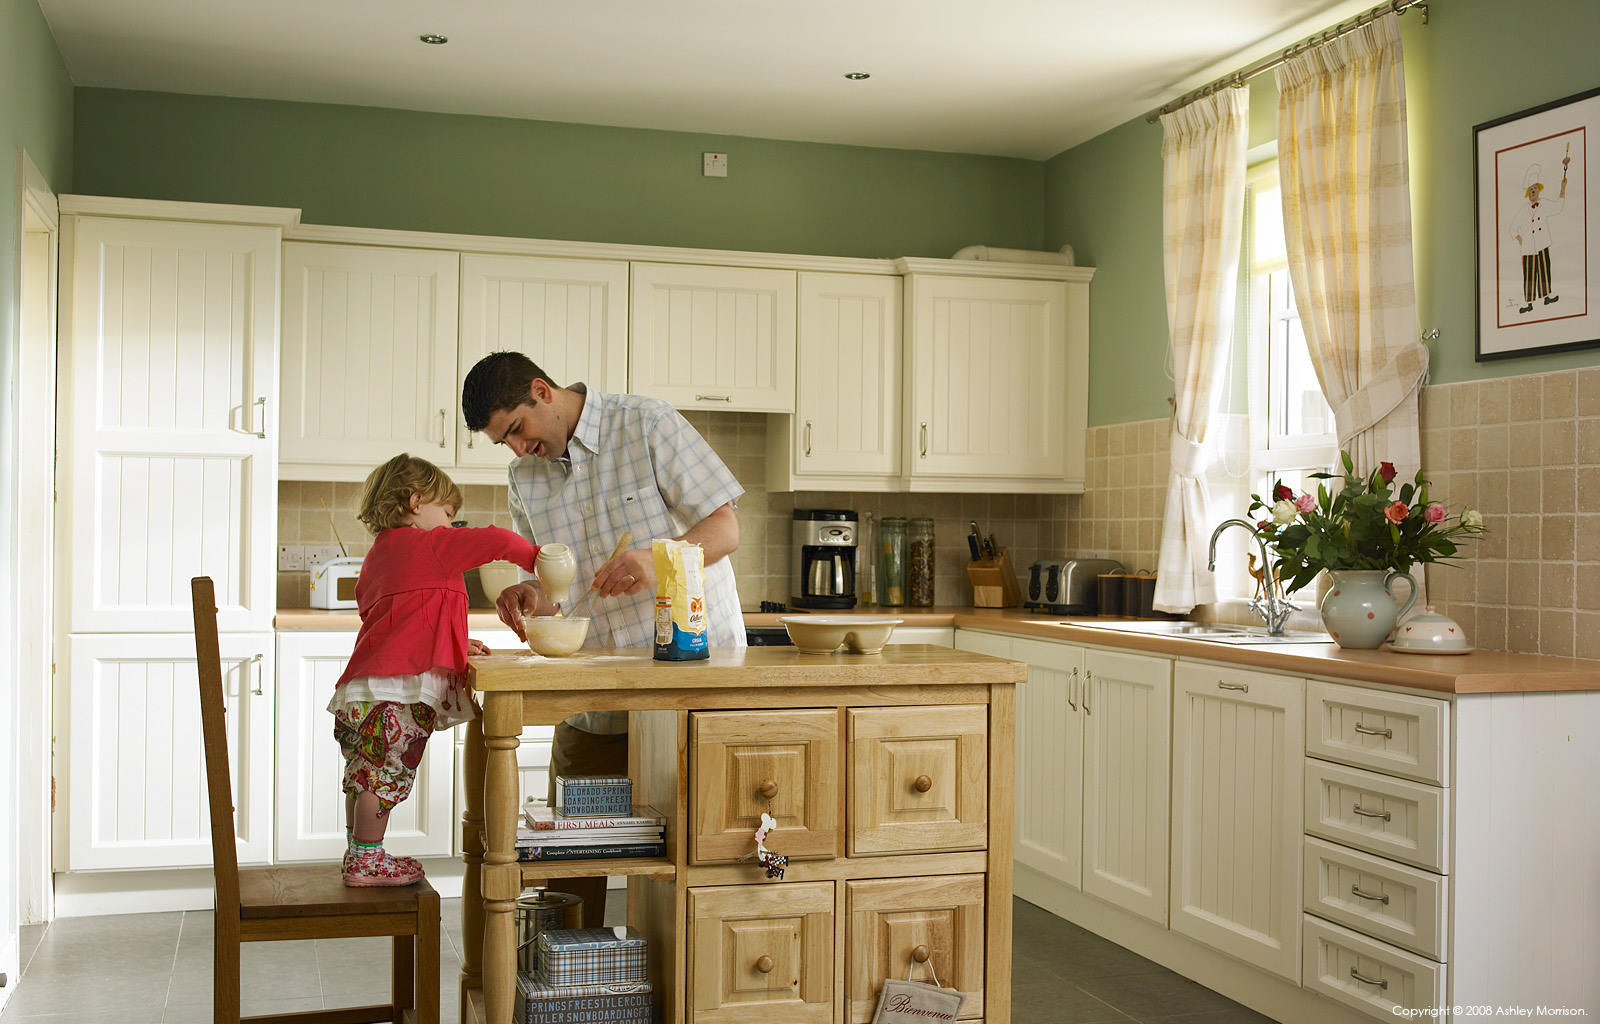 Matt King with his daughter in the kitchen of their home on the grounds of Castle Leslie in County Monaghan by Ashley Morrison.